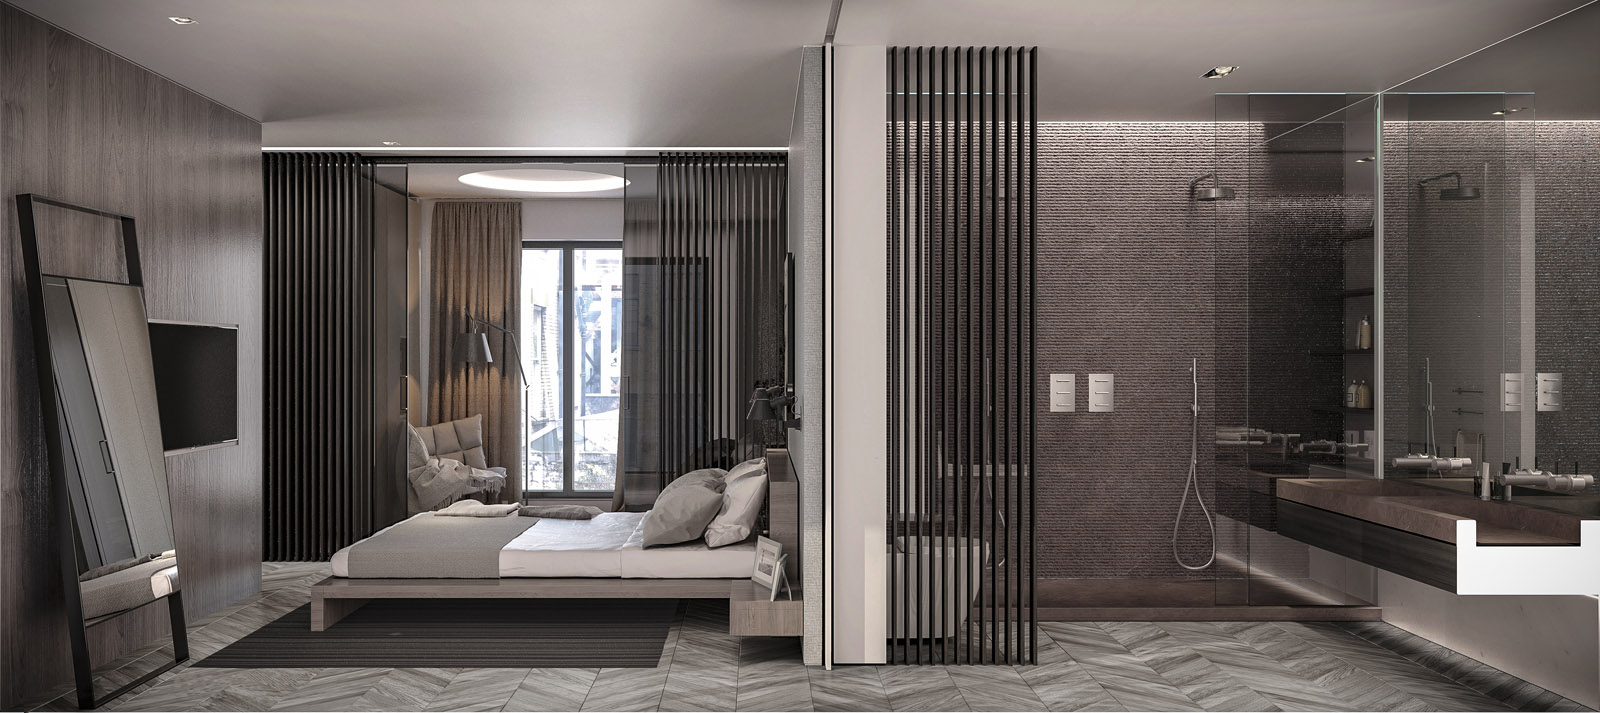 apartment - master bedroom with ensuite